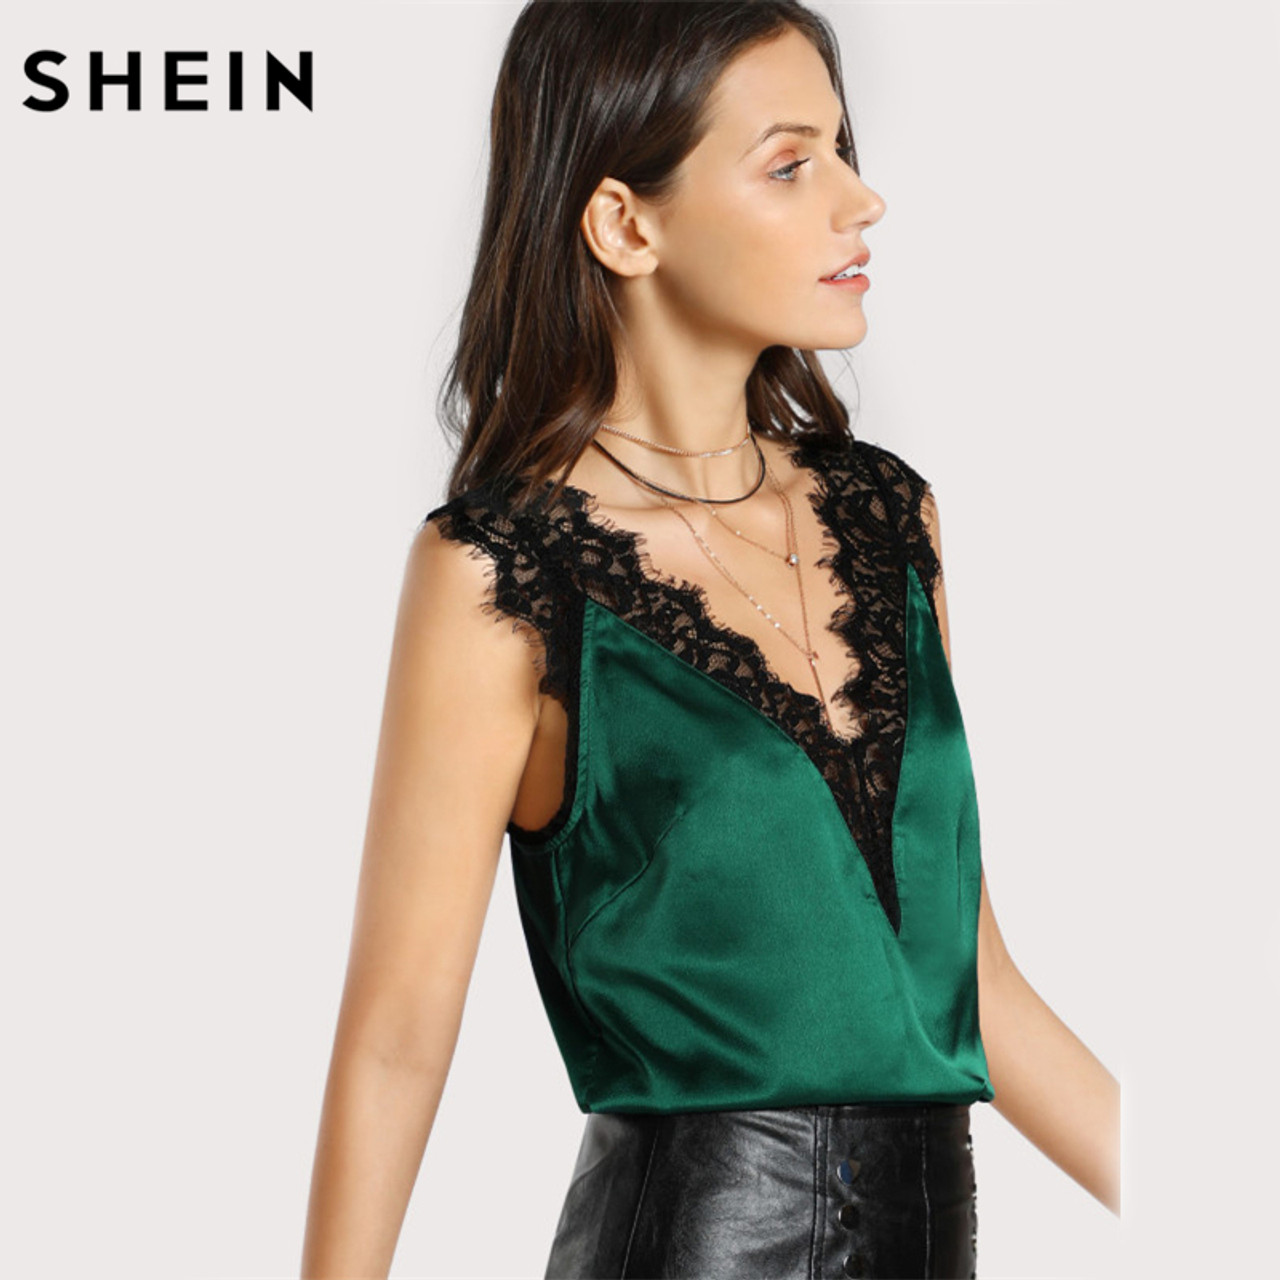 c1129db58b2 ... SHEIN Lace Trim Double V Neck Satin Silk Top Sexy Tops for Women  Fitness Tank Top ...